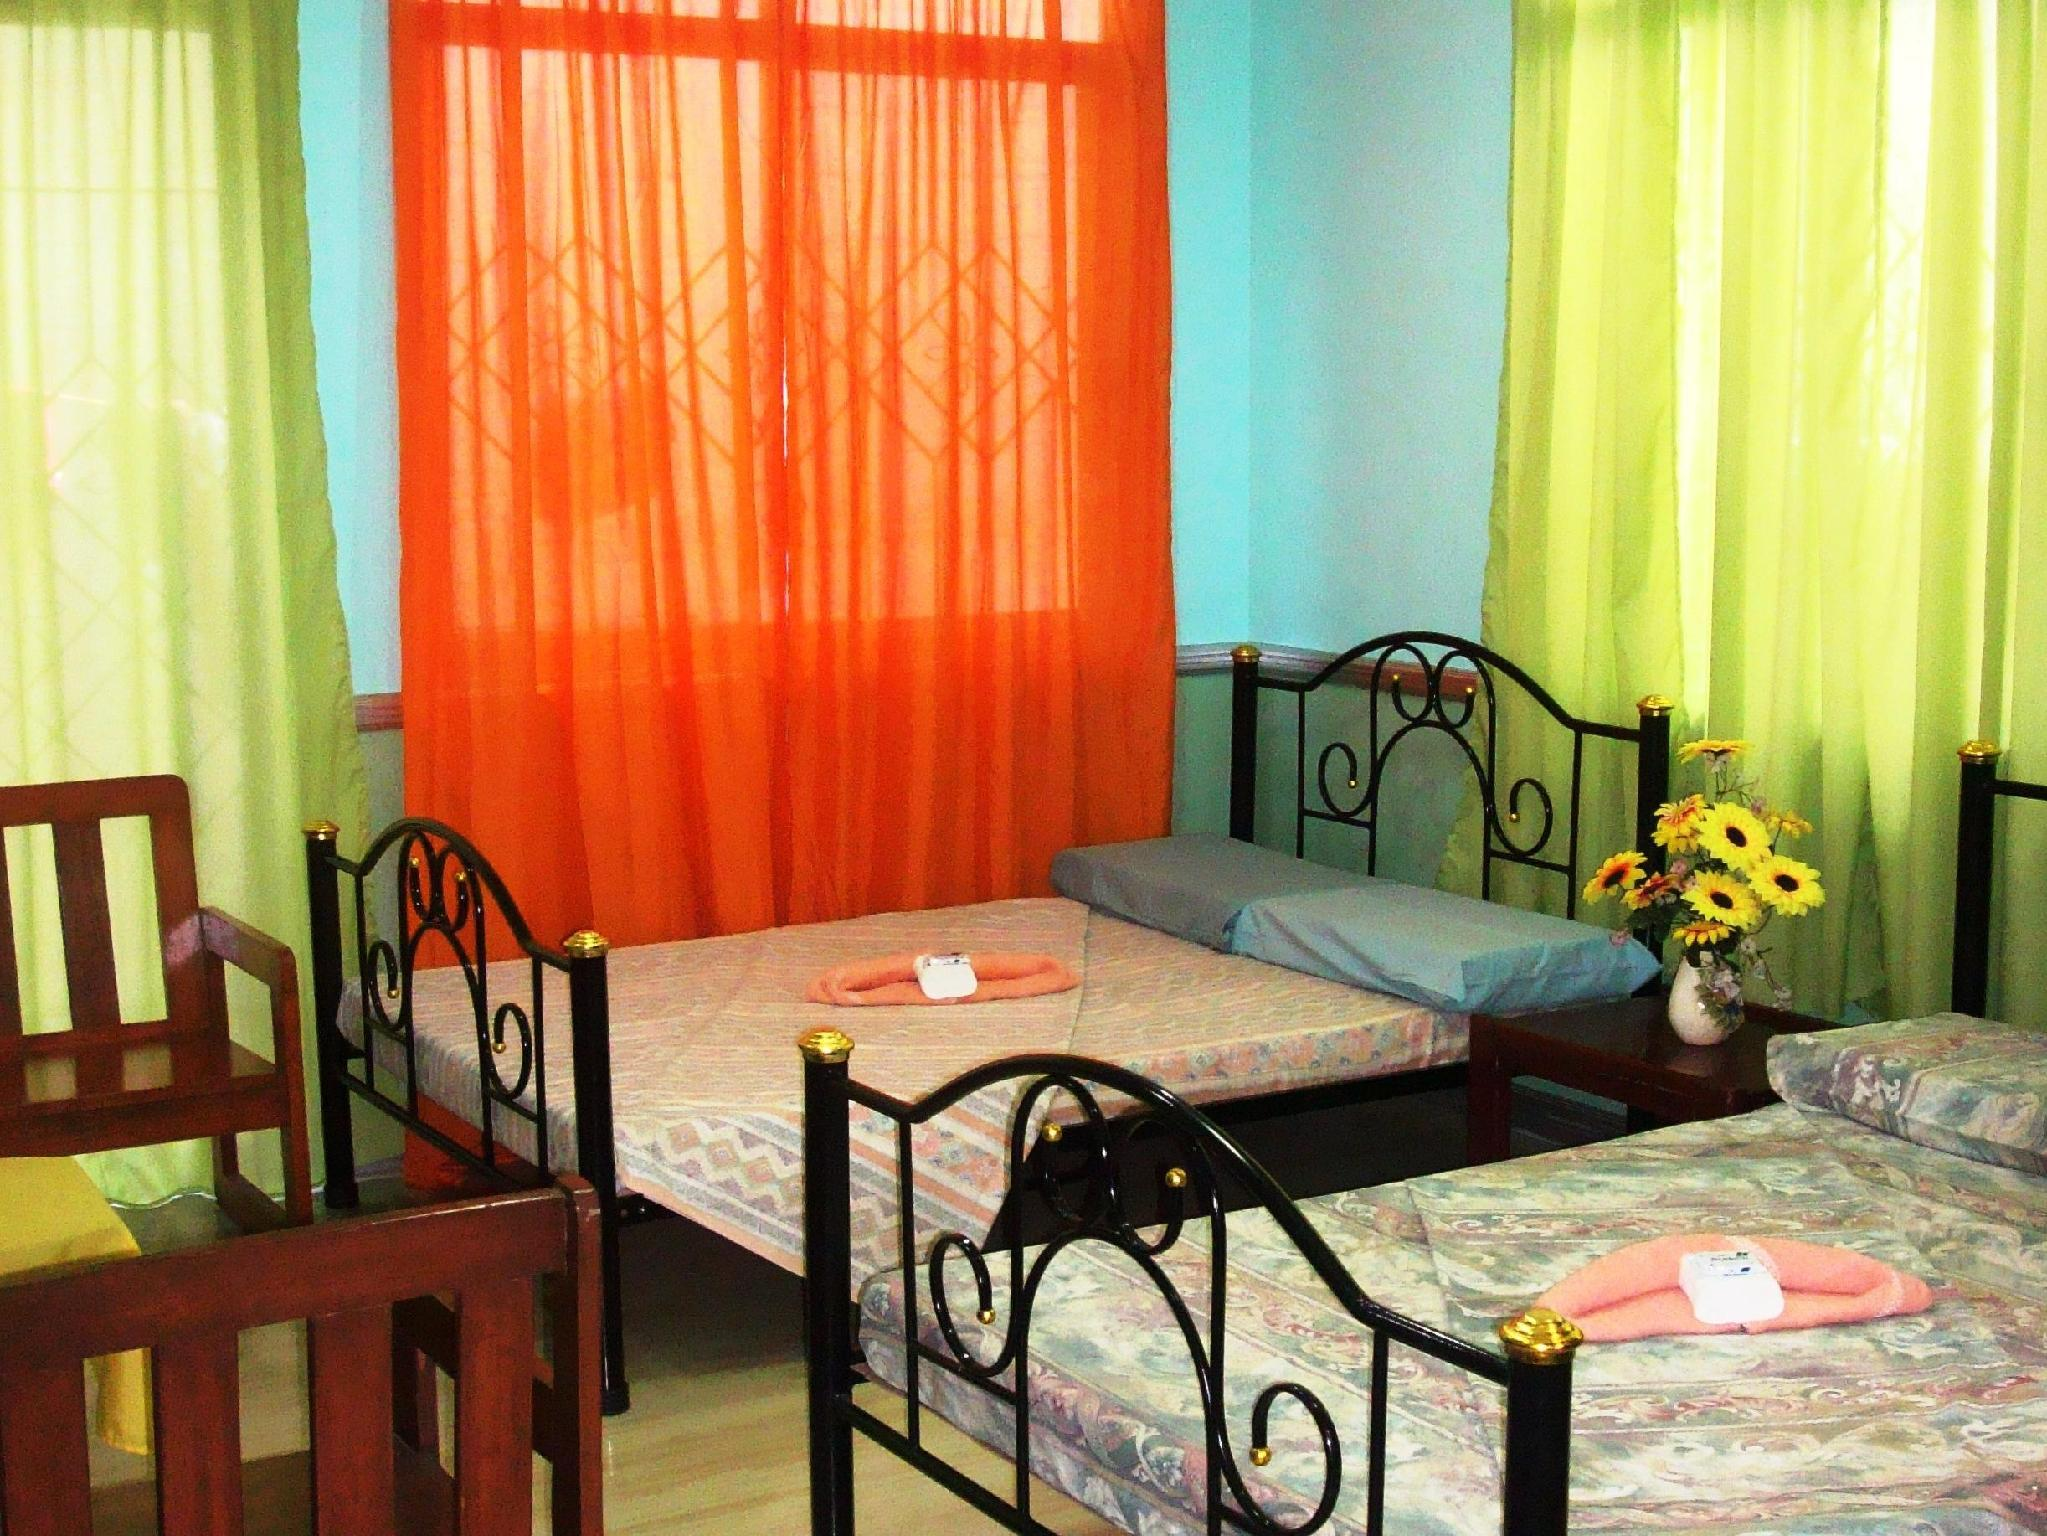 Manna Pension House In Bacolod Negros Occidental Room